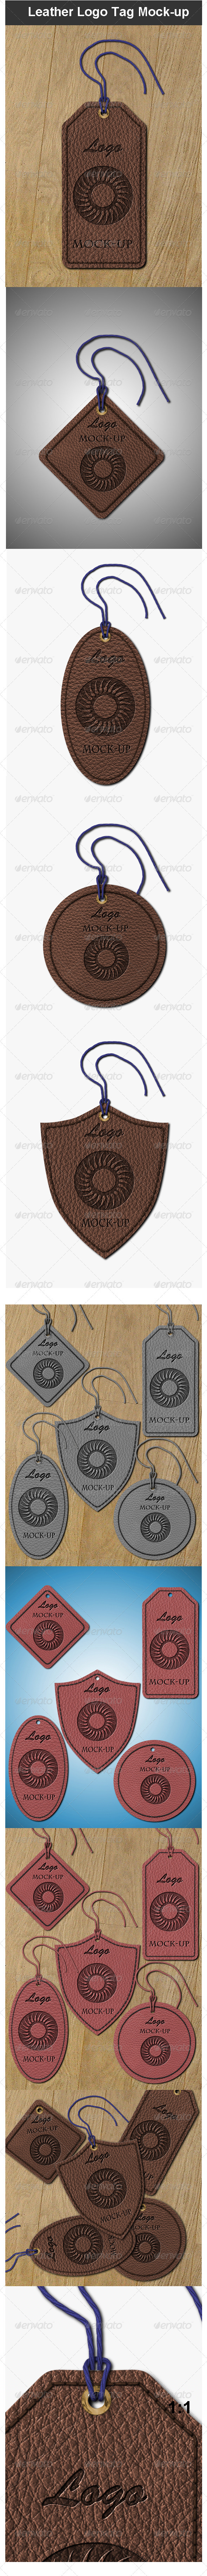 Leather Logo Tag Mock-up - Logo Product Mock-Ups